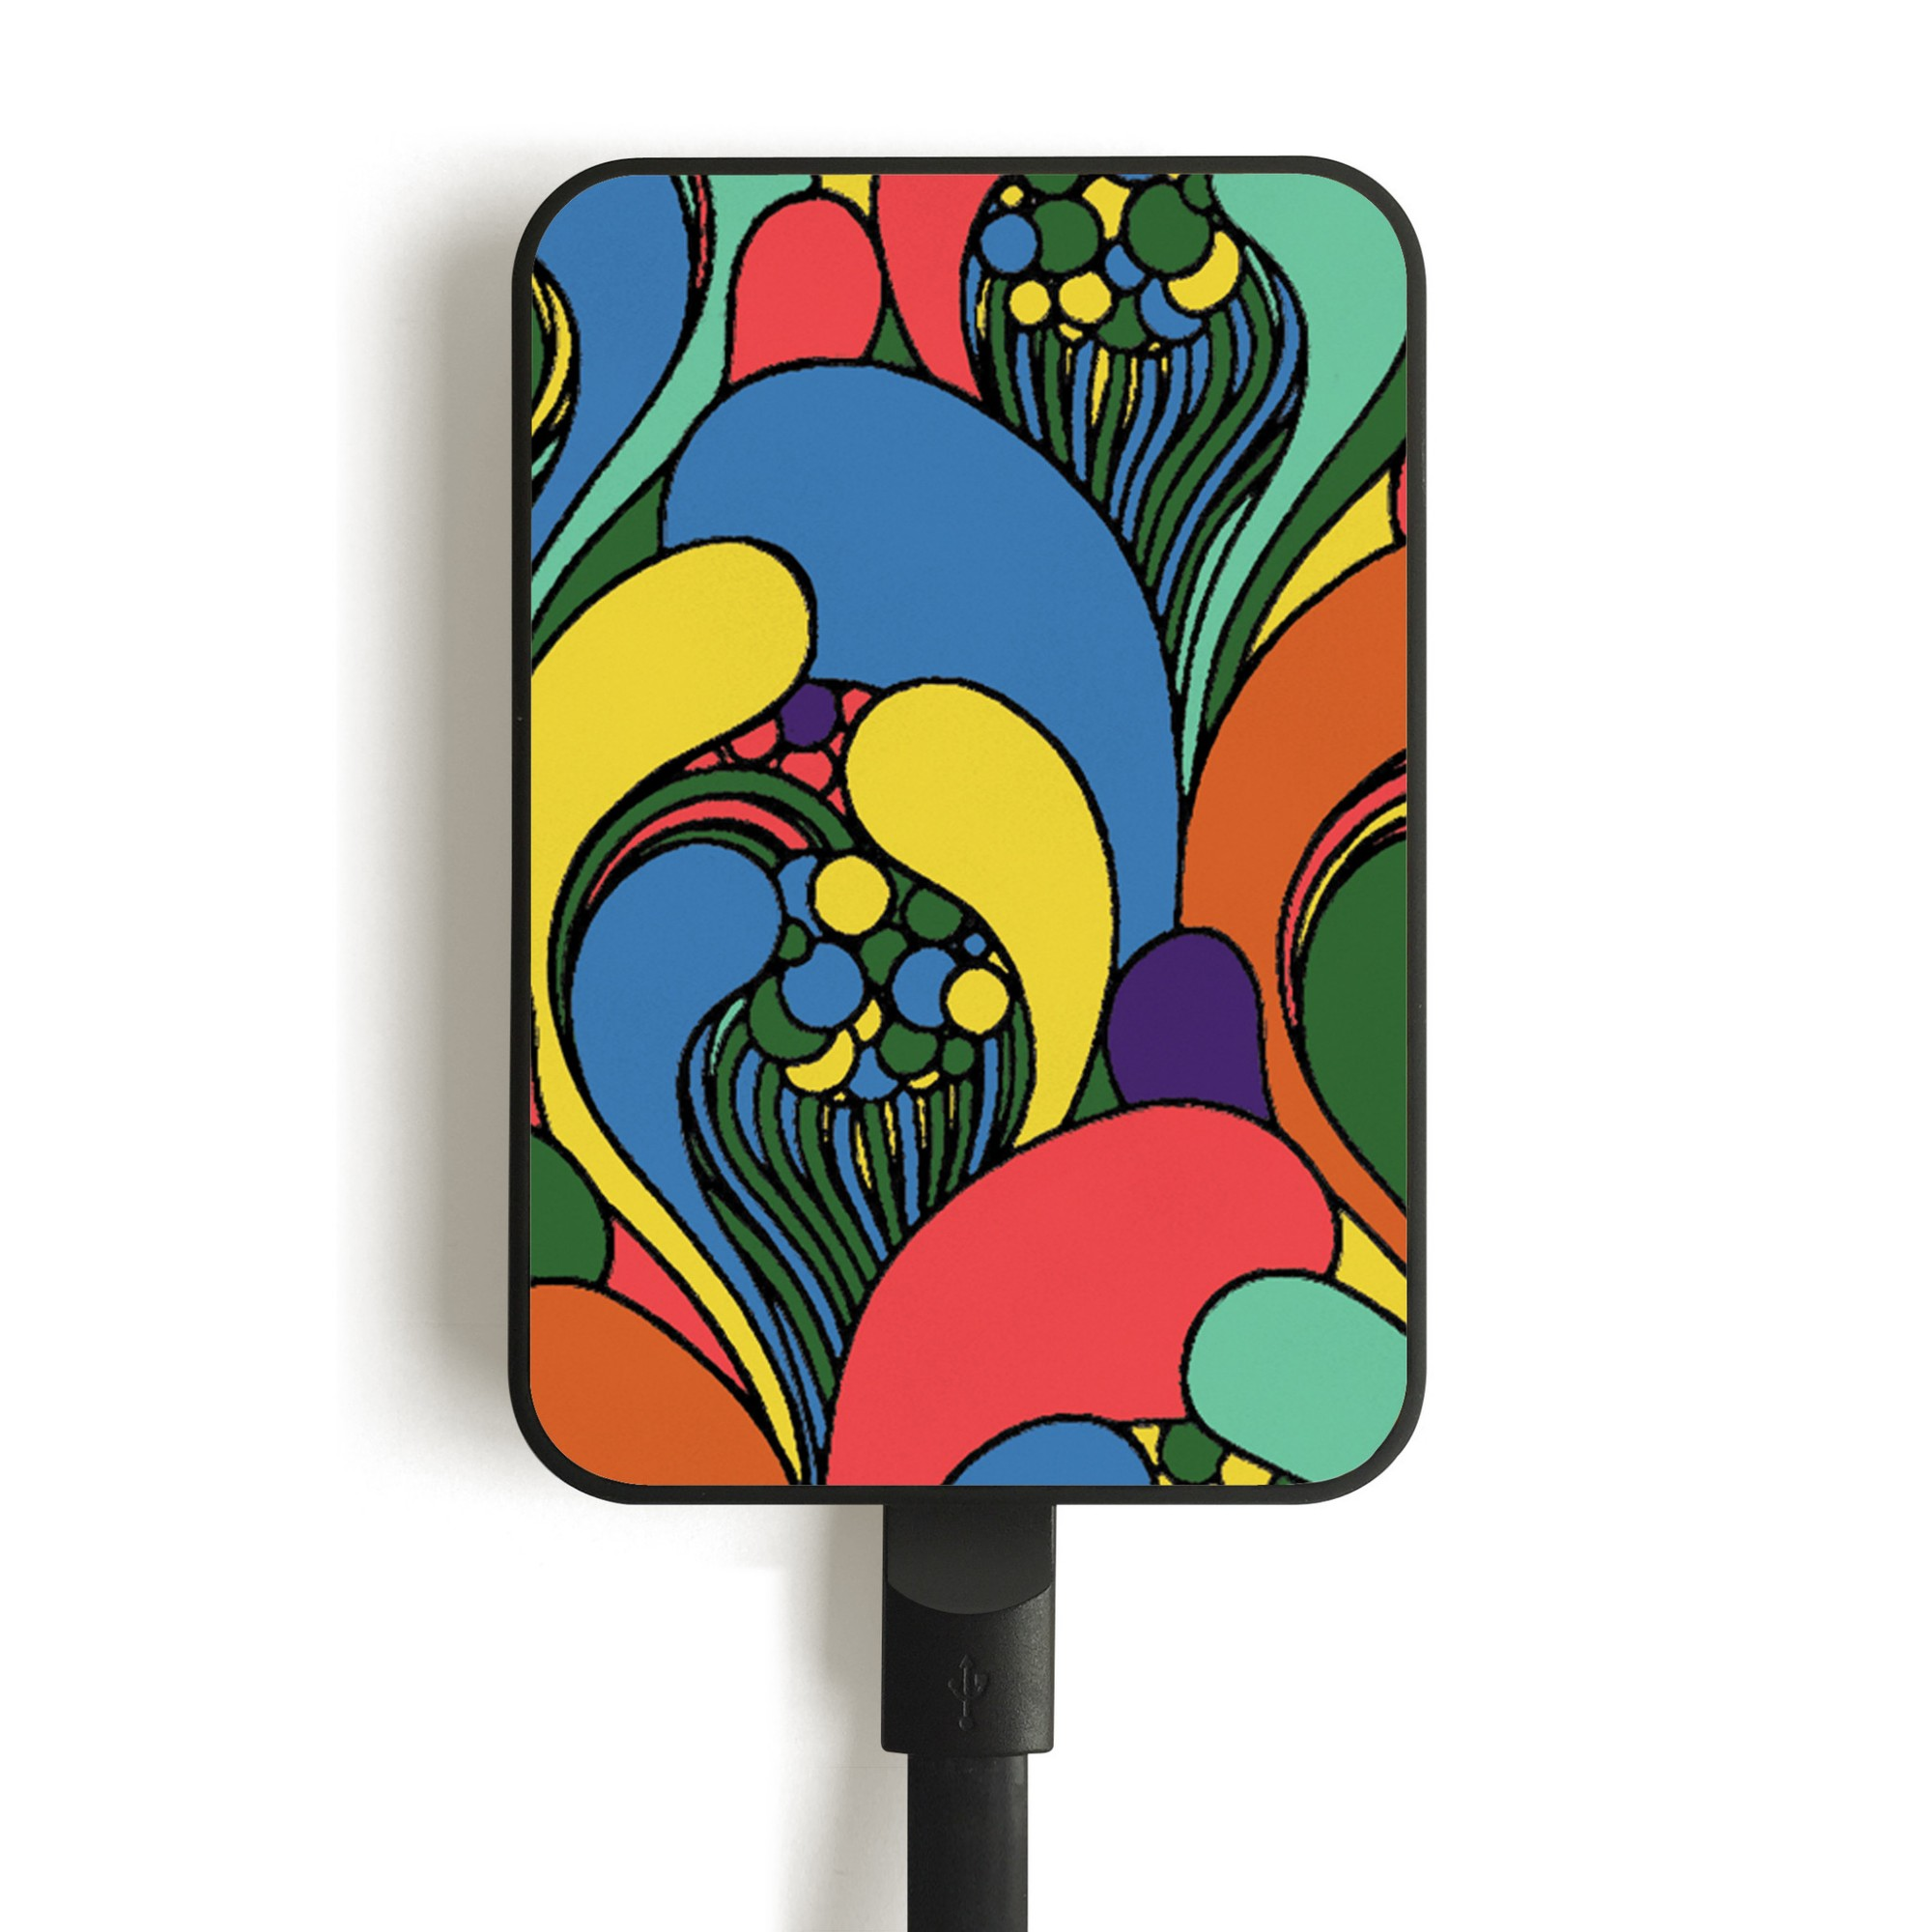 Smartoools MC10 FLOWERS batería externa Multicolor Polímero de litio 10000 mAh